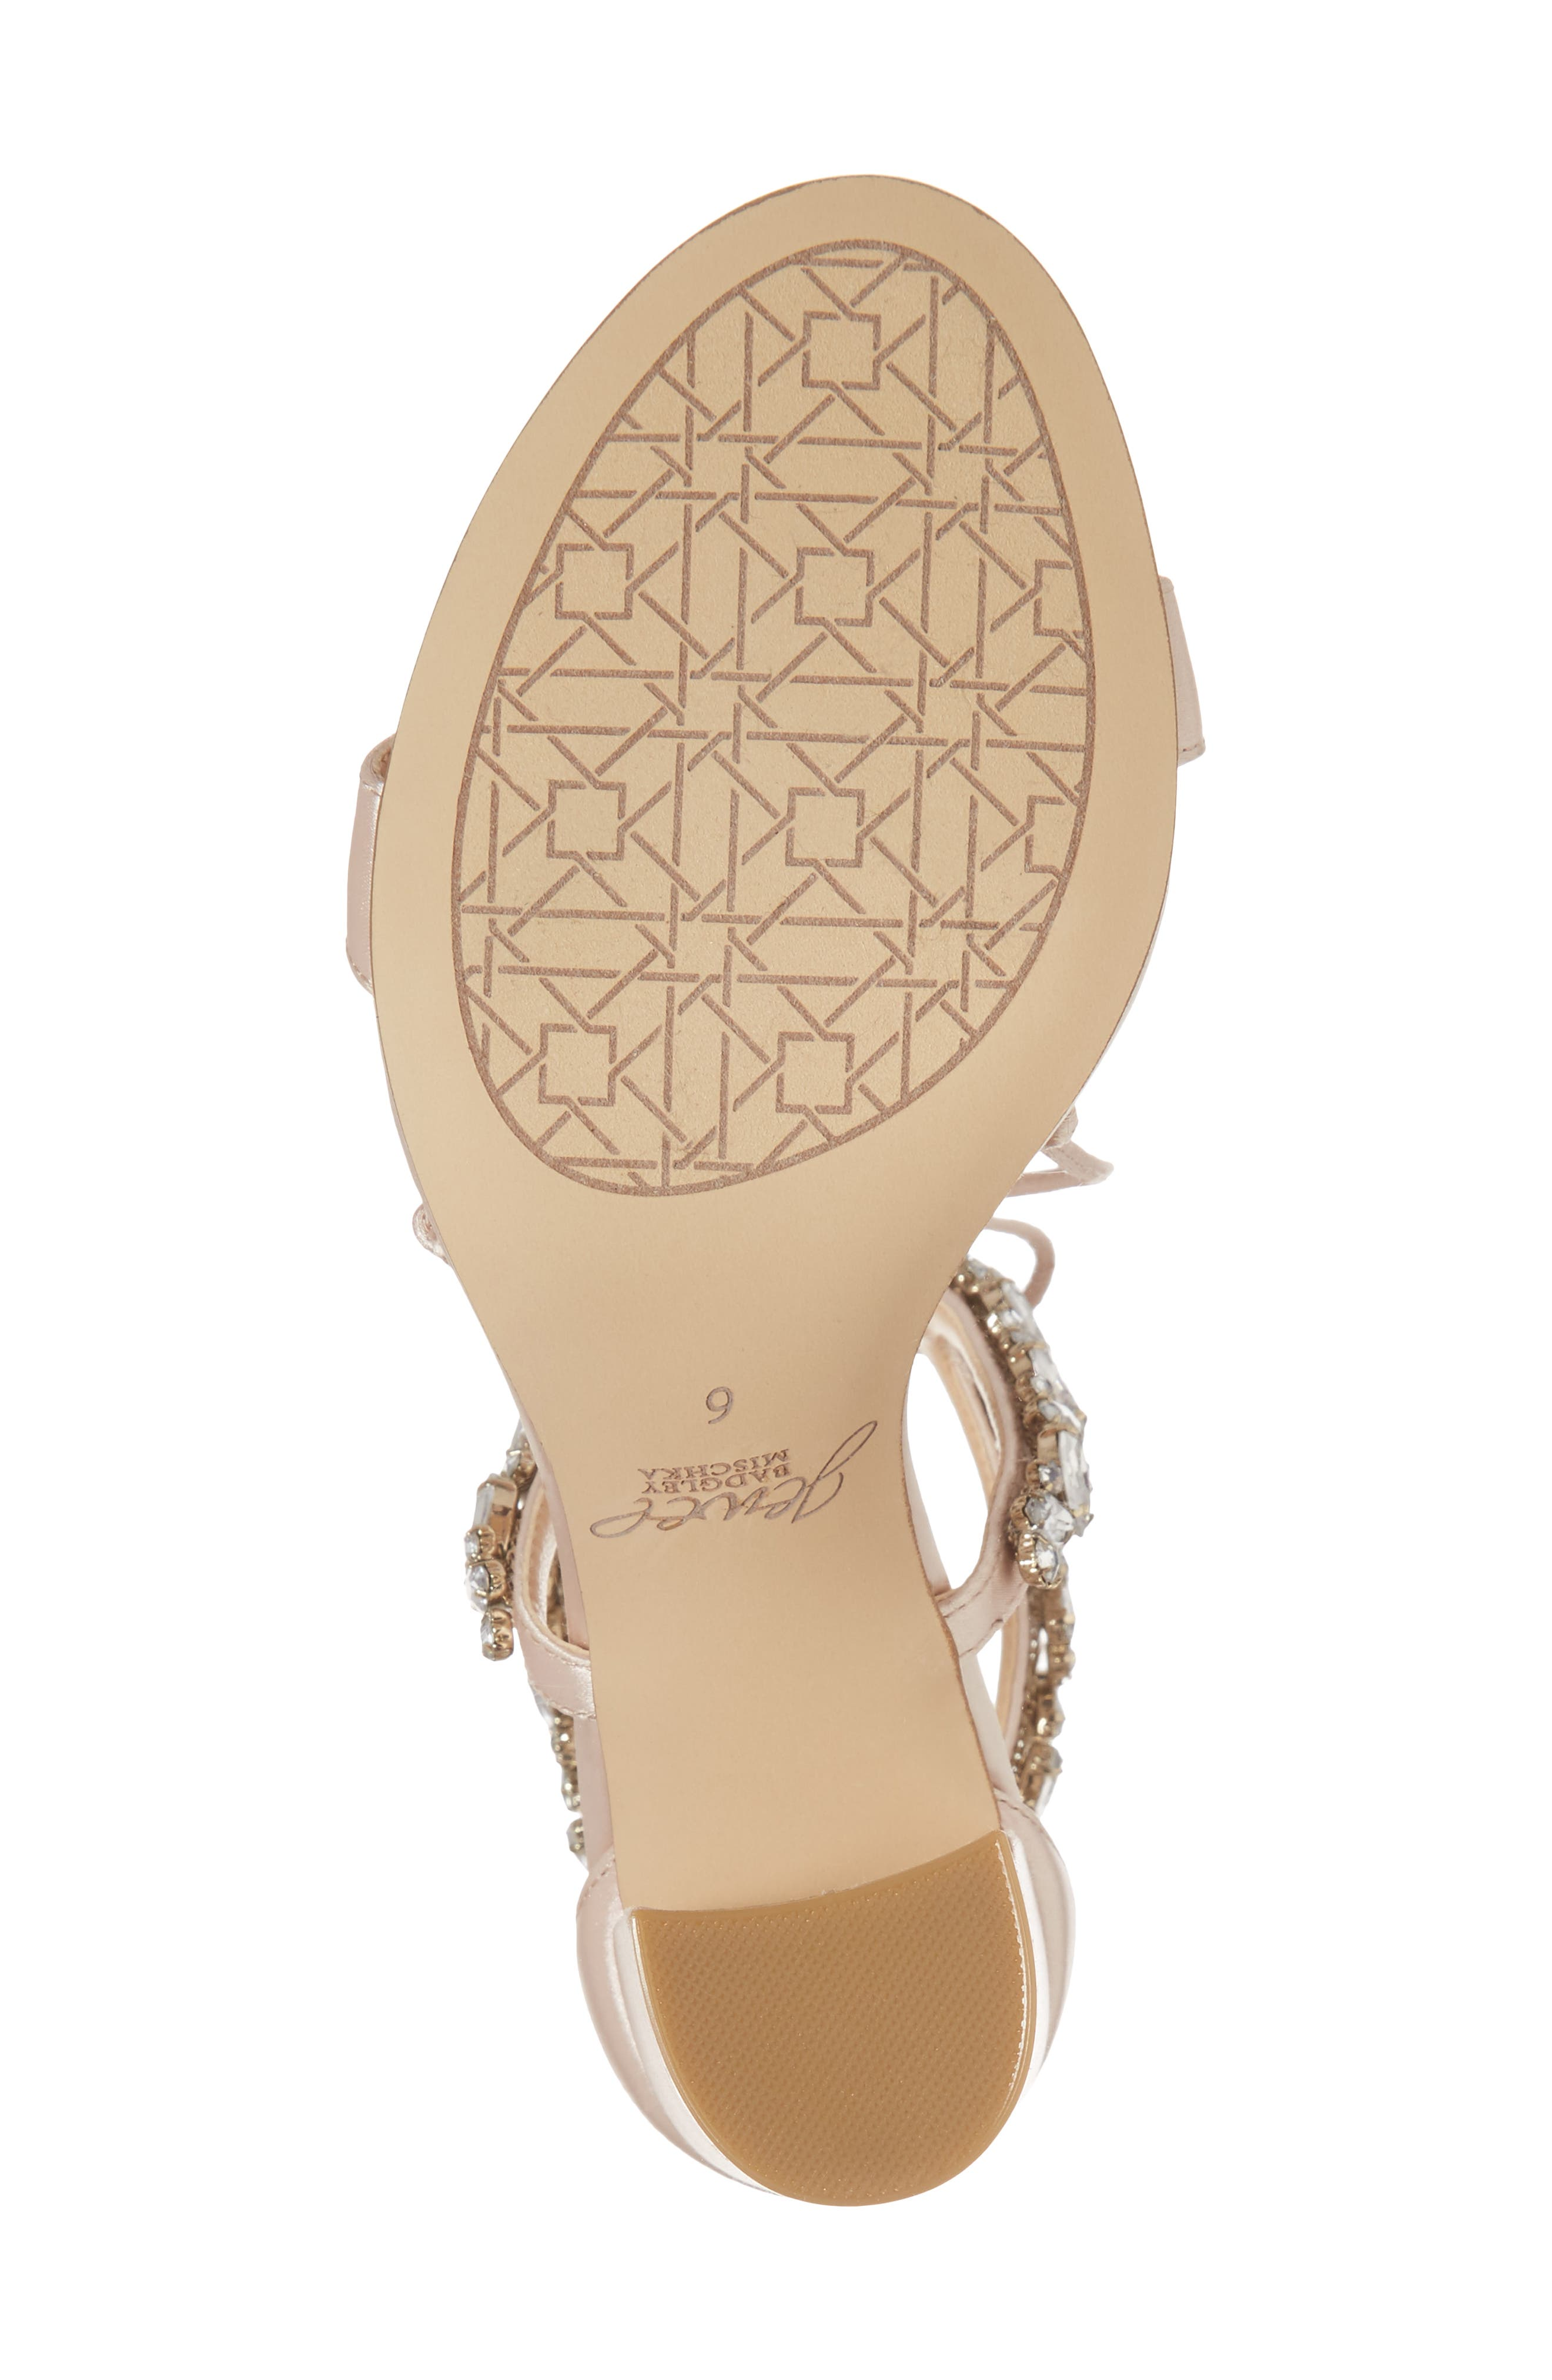 JEWEL BADGLEY MISCHKA,                             Thamar Embellished Sandal,                             Alternate thumbnail 6, color,                             CHAMPAGNE SATIN